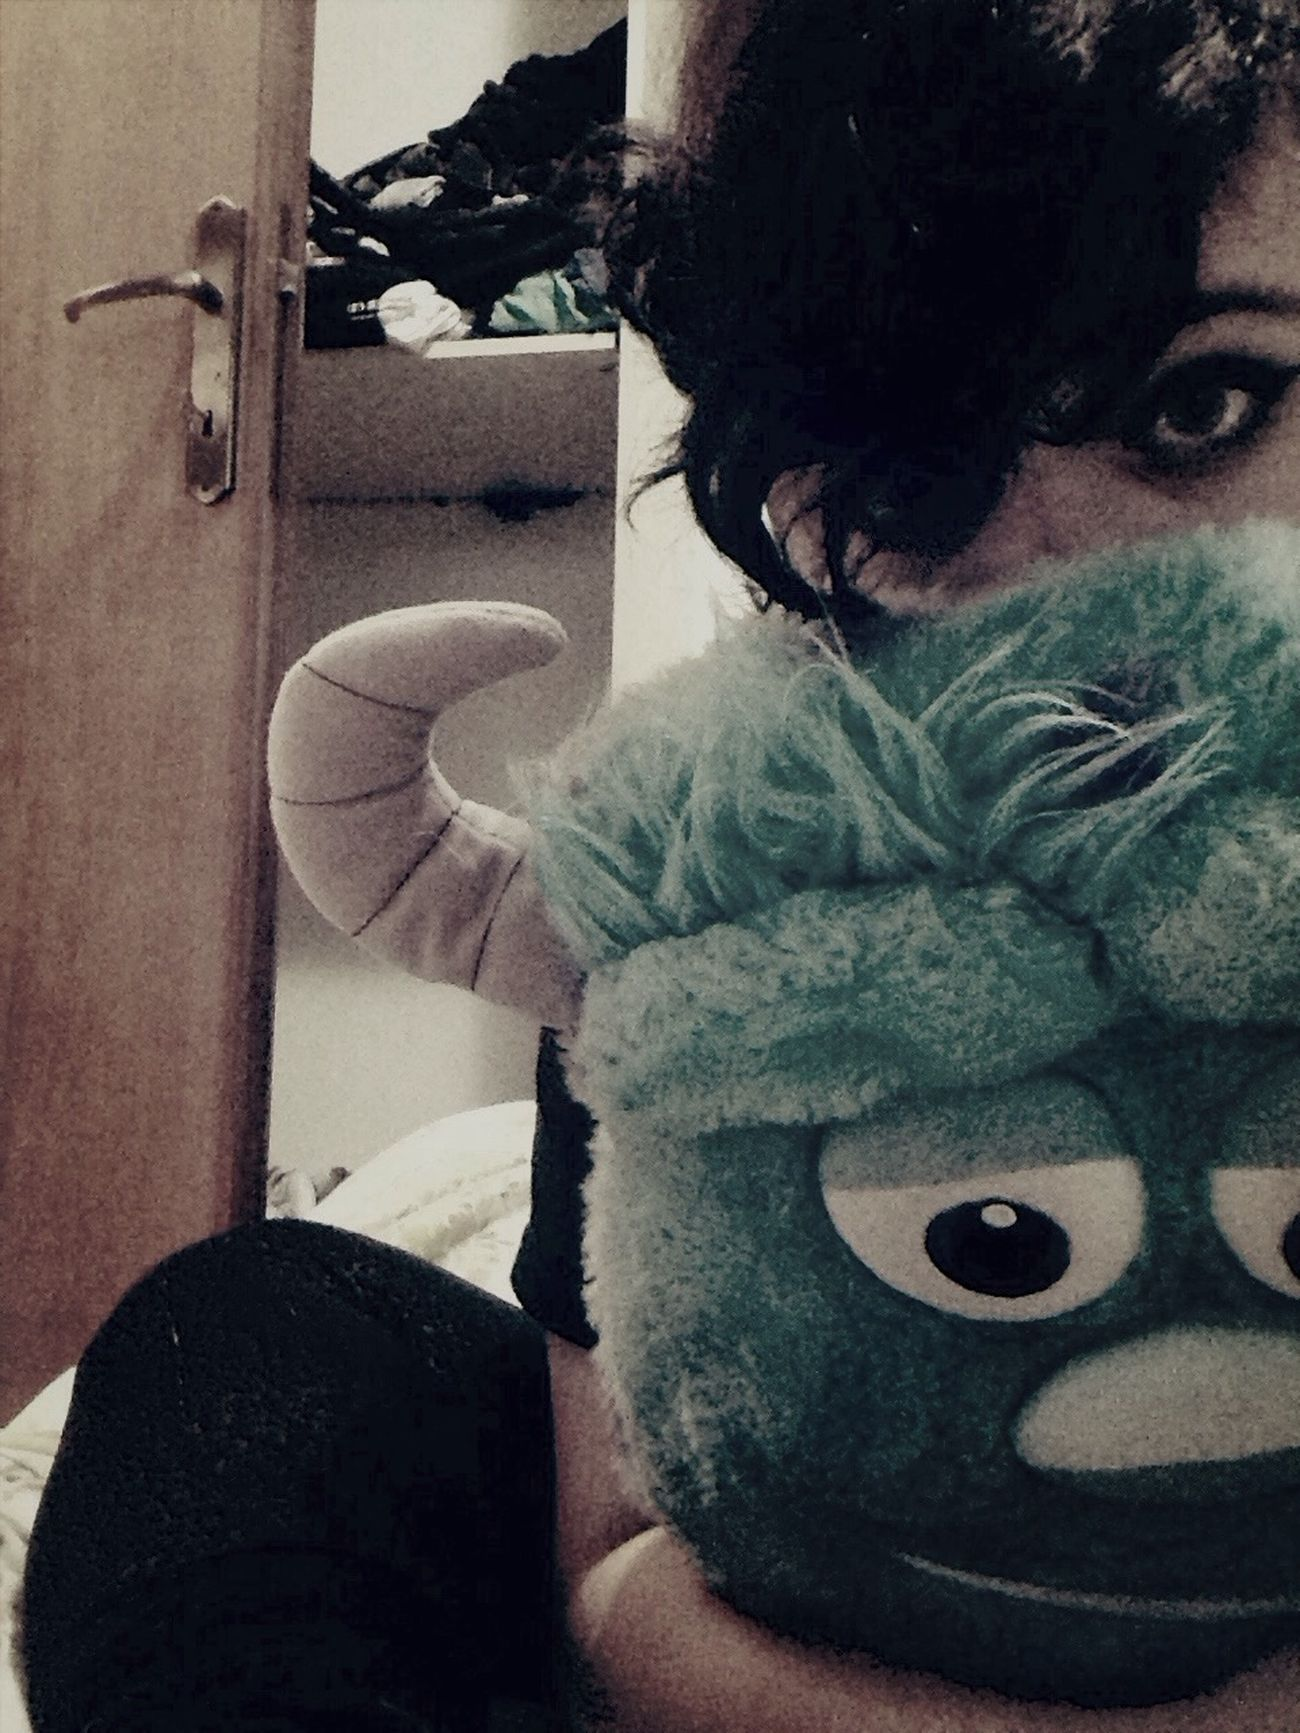 -Goodbye boo, kitty has to go. That's Me Sulley Boo Monsters & Co